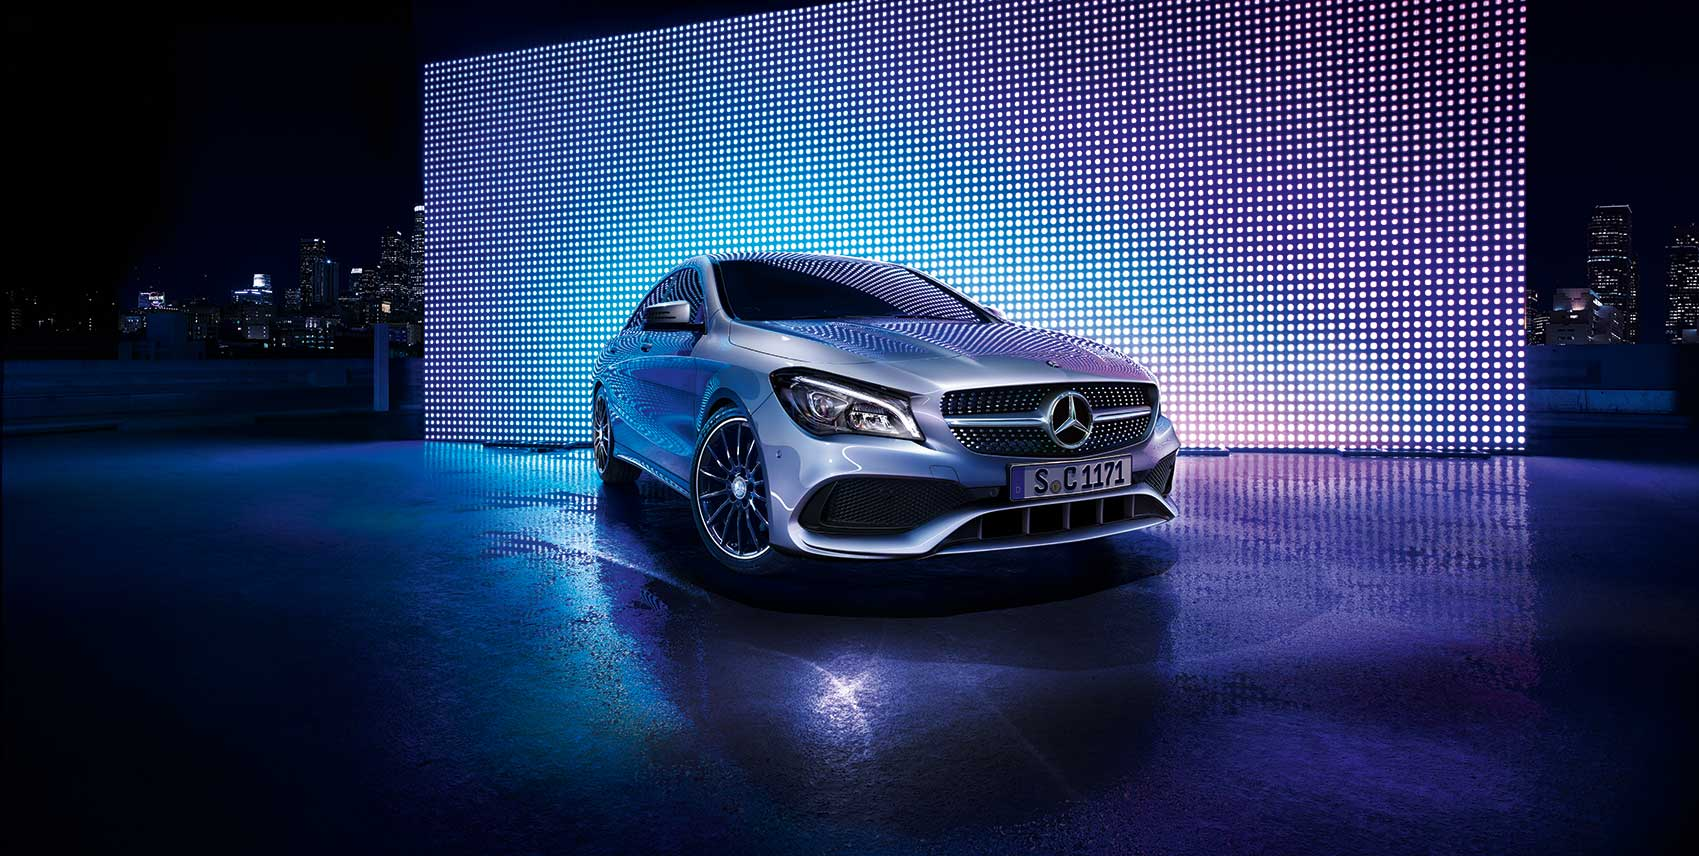 2019 Mercedes-Benz CLA 250 4MATIC Coupé